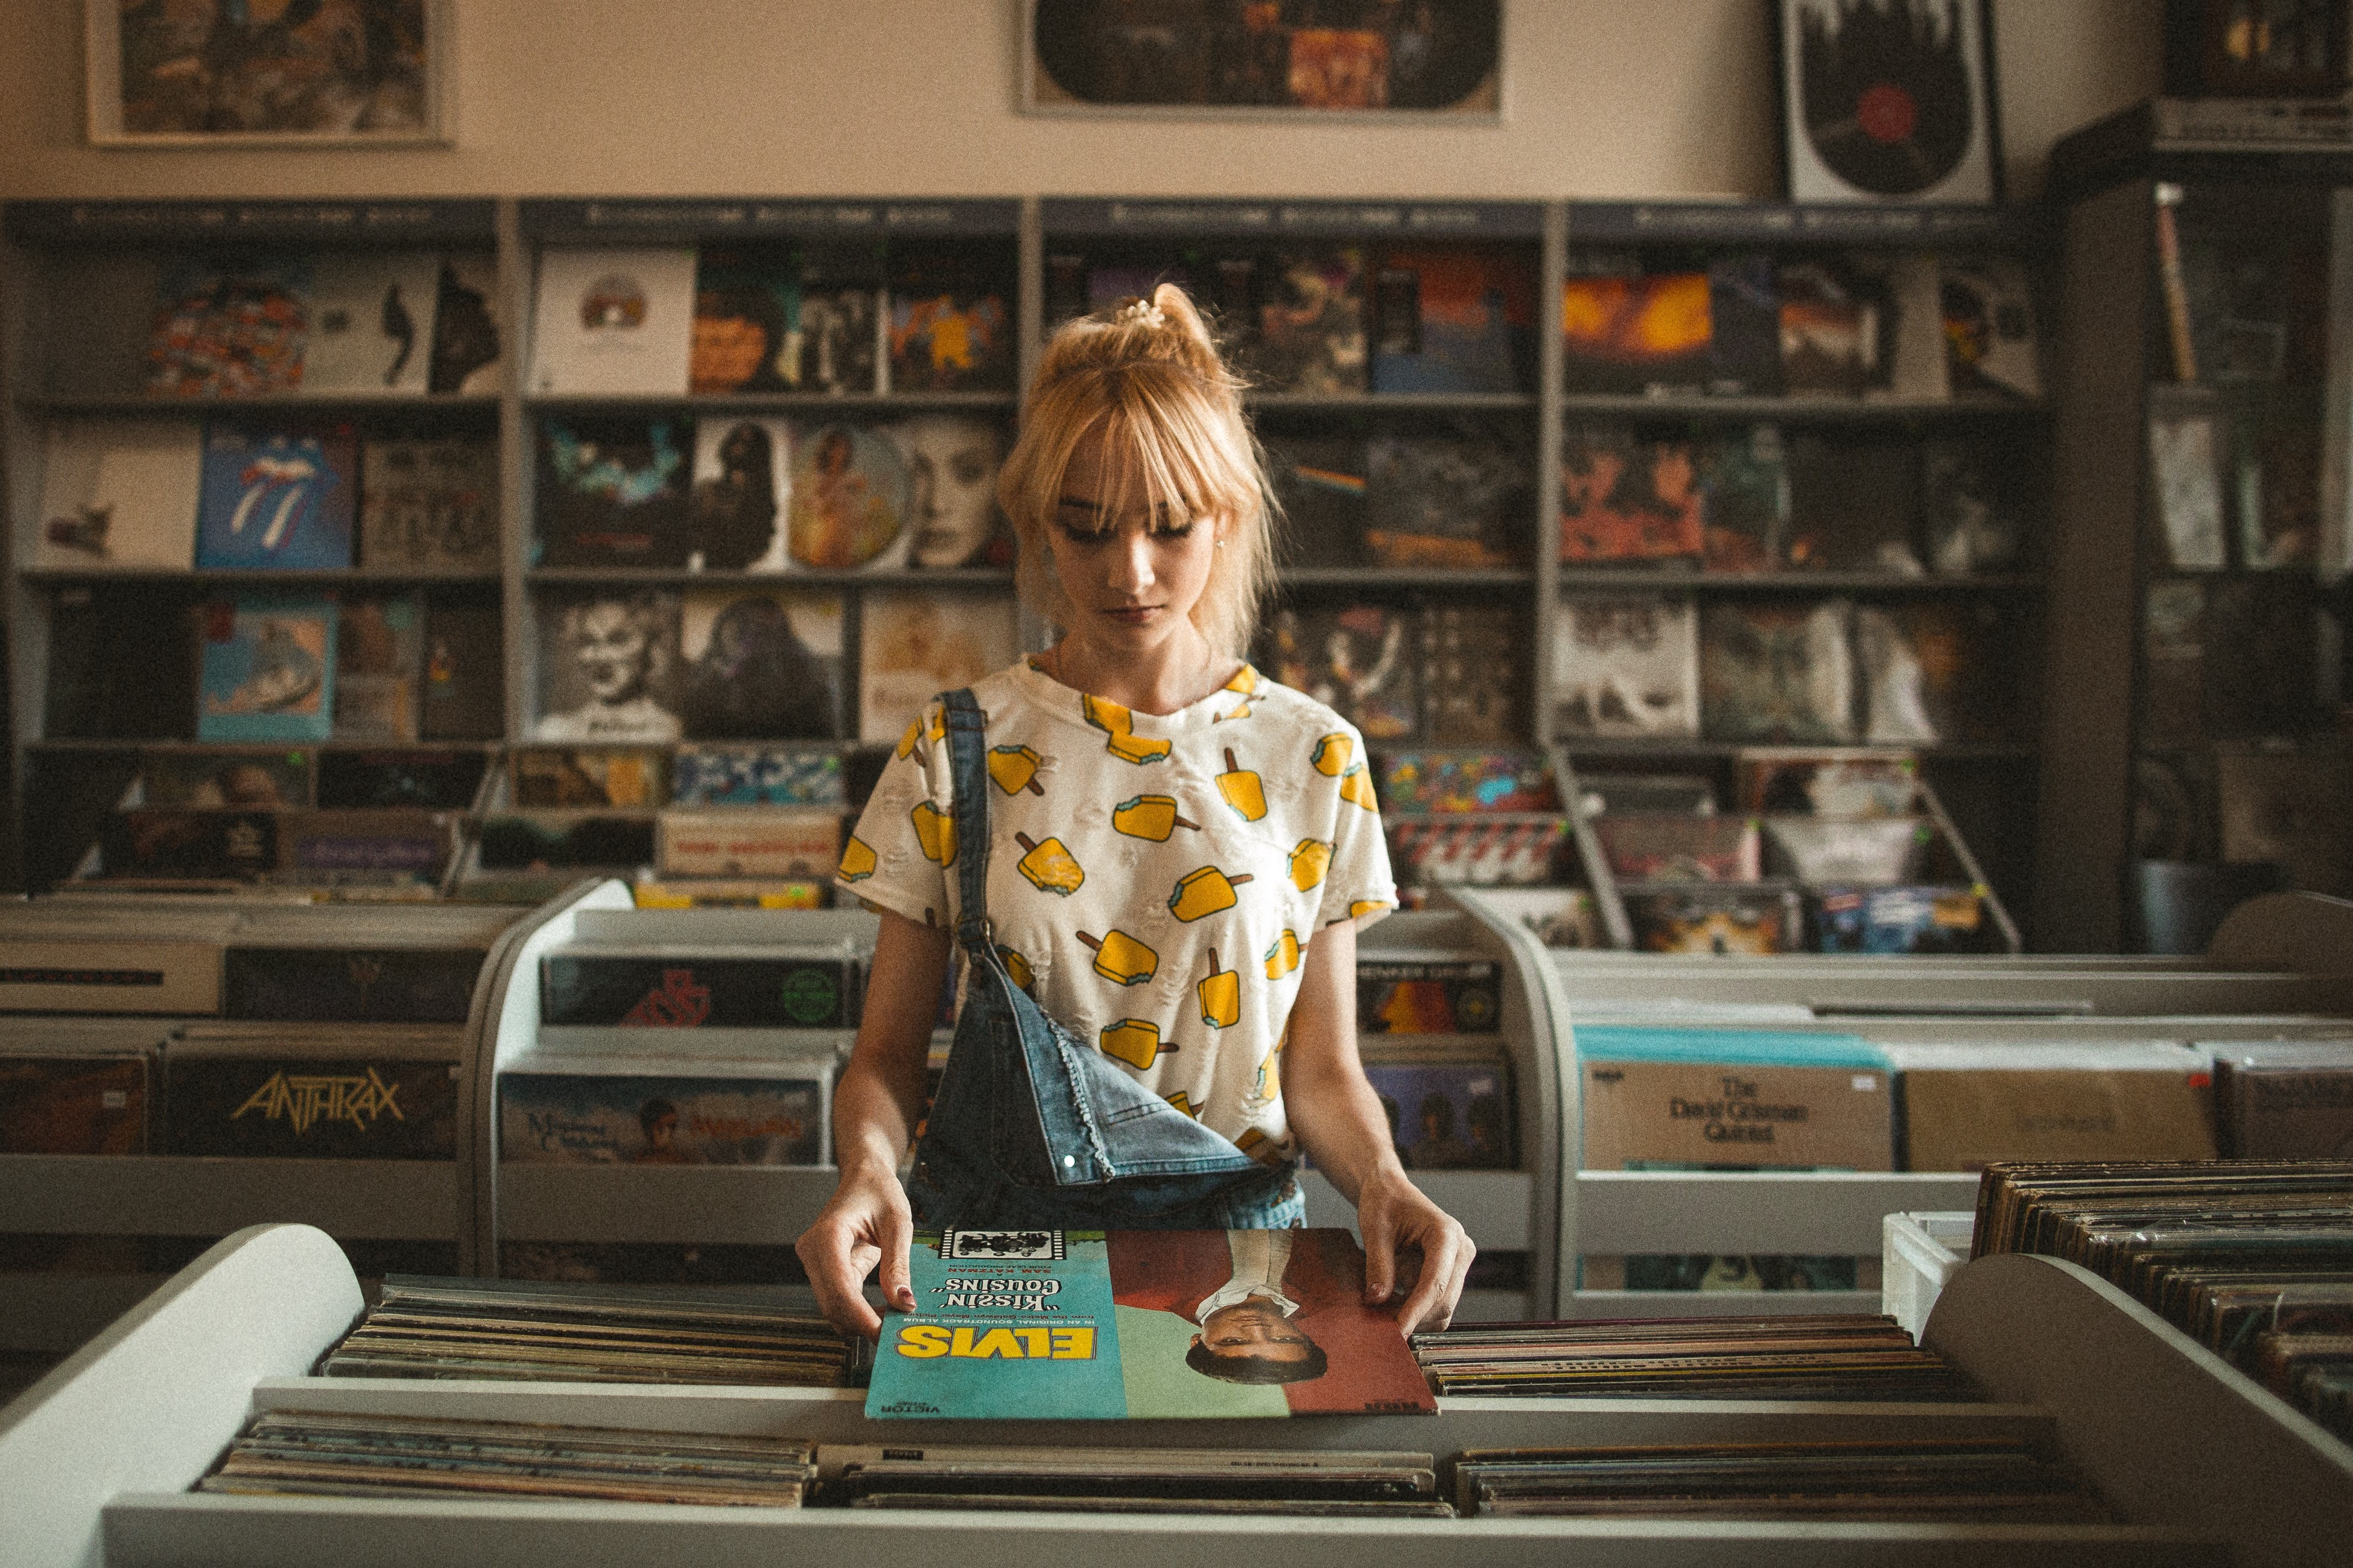 The 100 best record shops in Europe - Miguel Ferreira - Medium